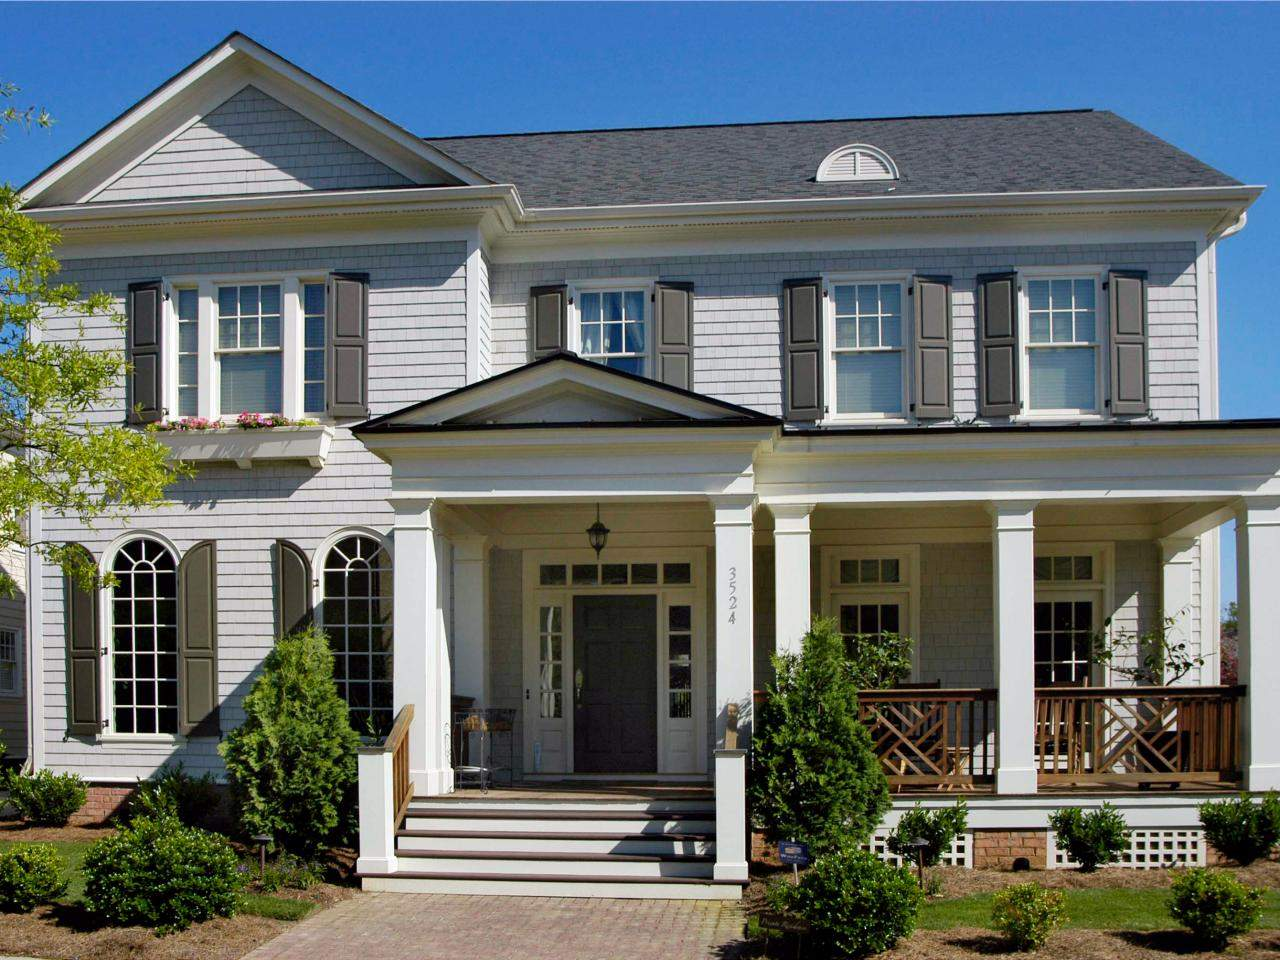 Designlens Gray Two Story House Rend Hgtvcom Jpeg